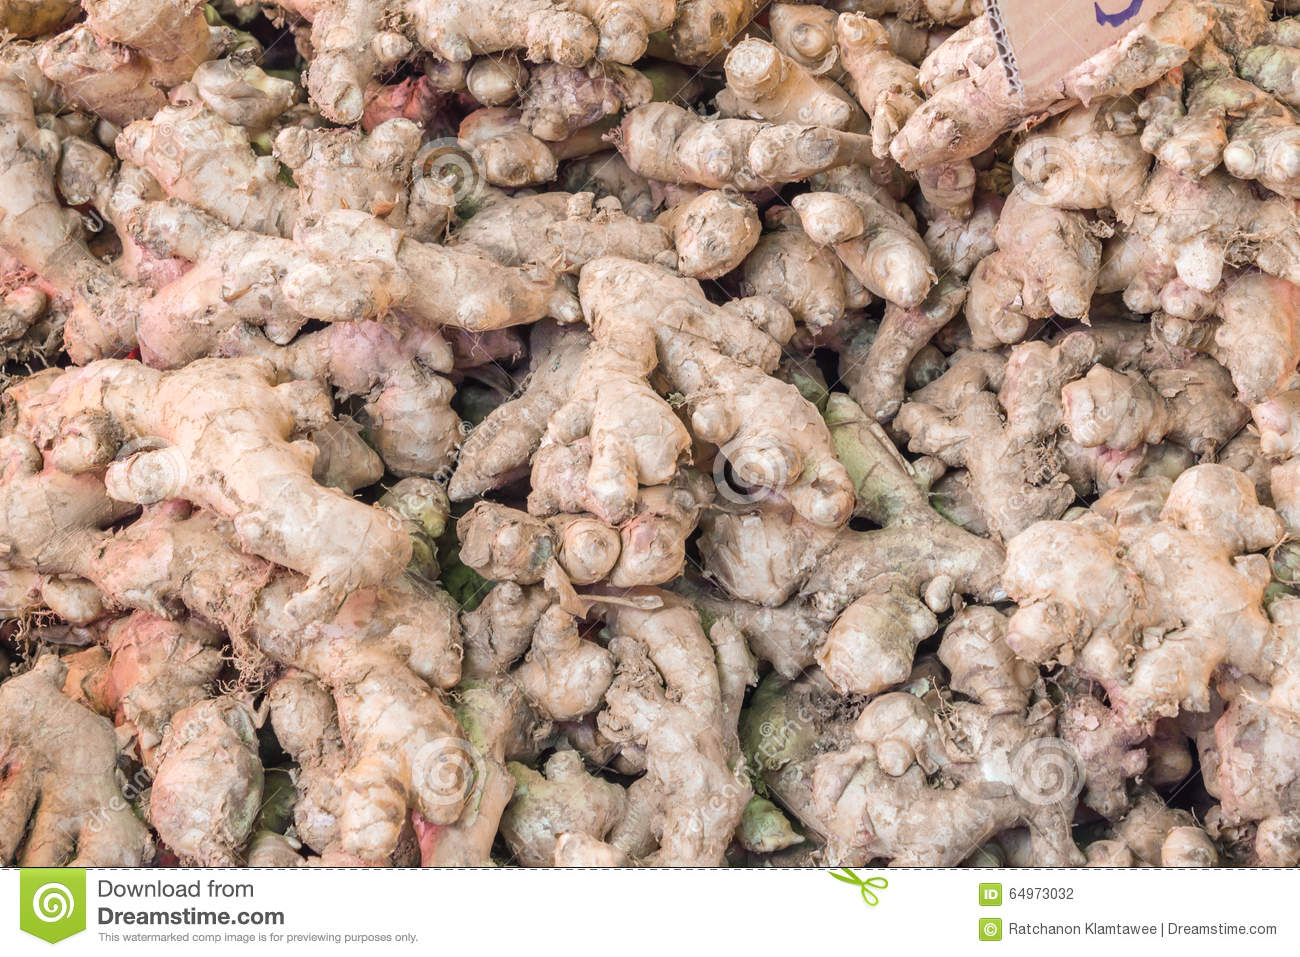 HOW TO BE A MULTI-MILLIONAIRE GINGER FARMER - A WINNING BUSINESS PLAN